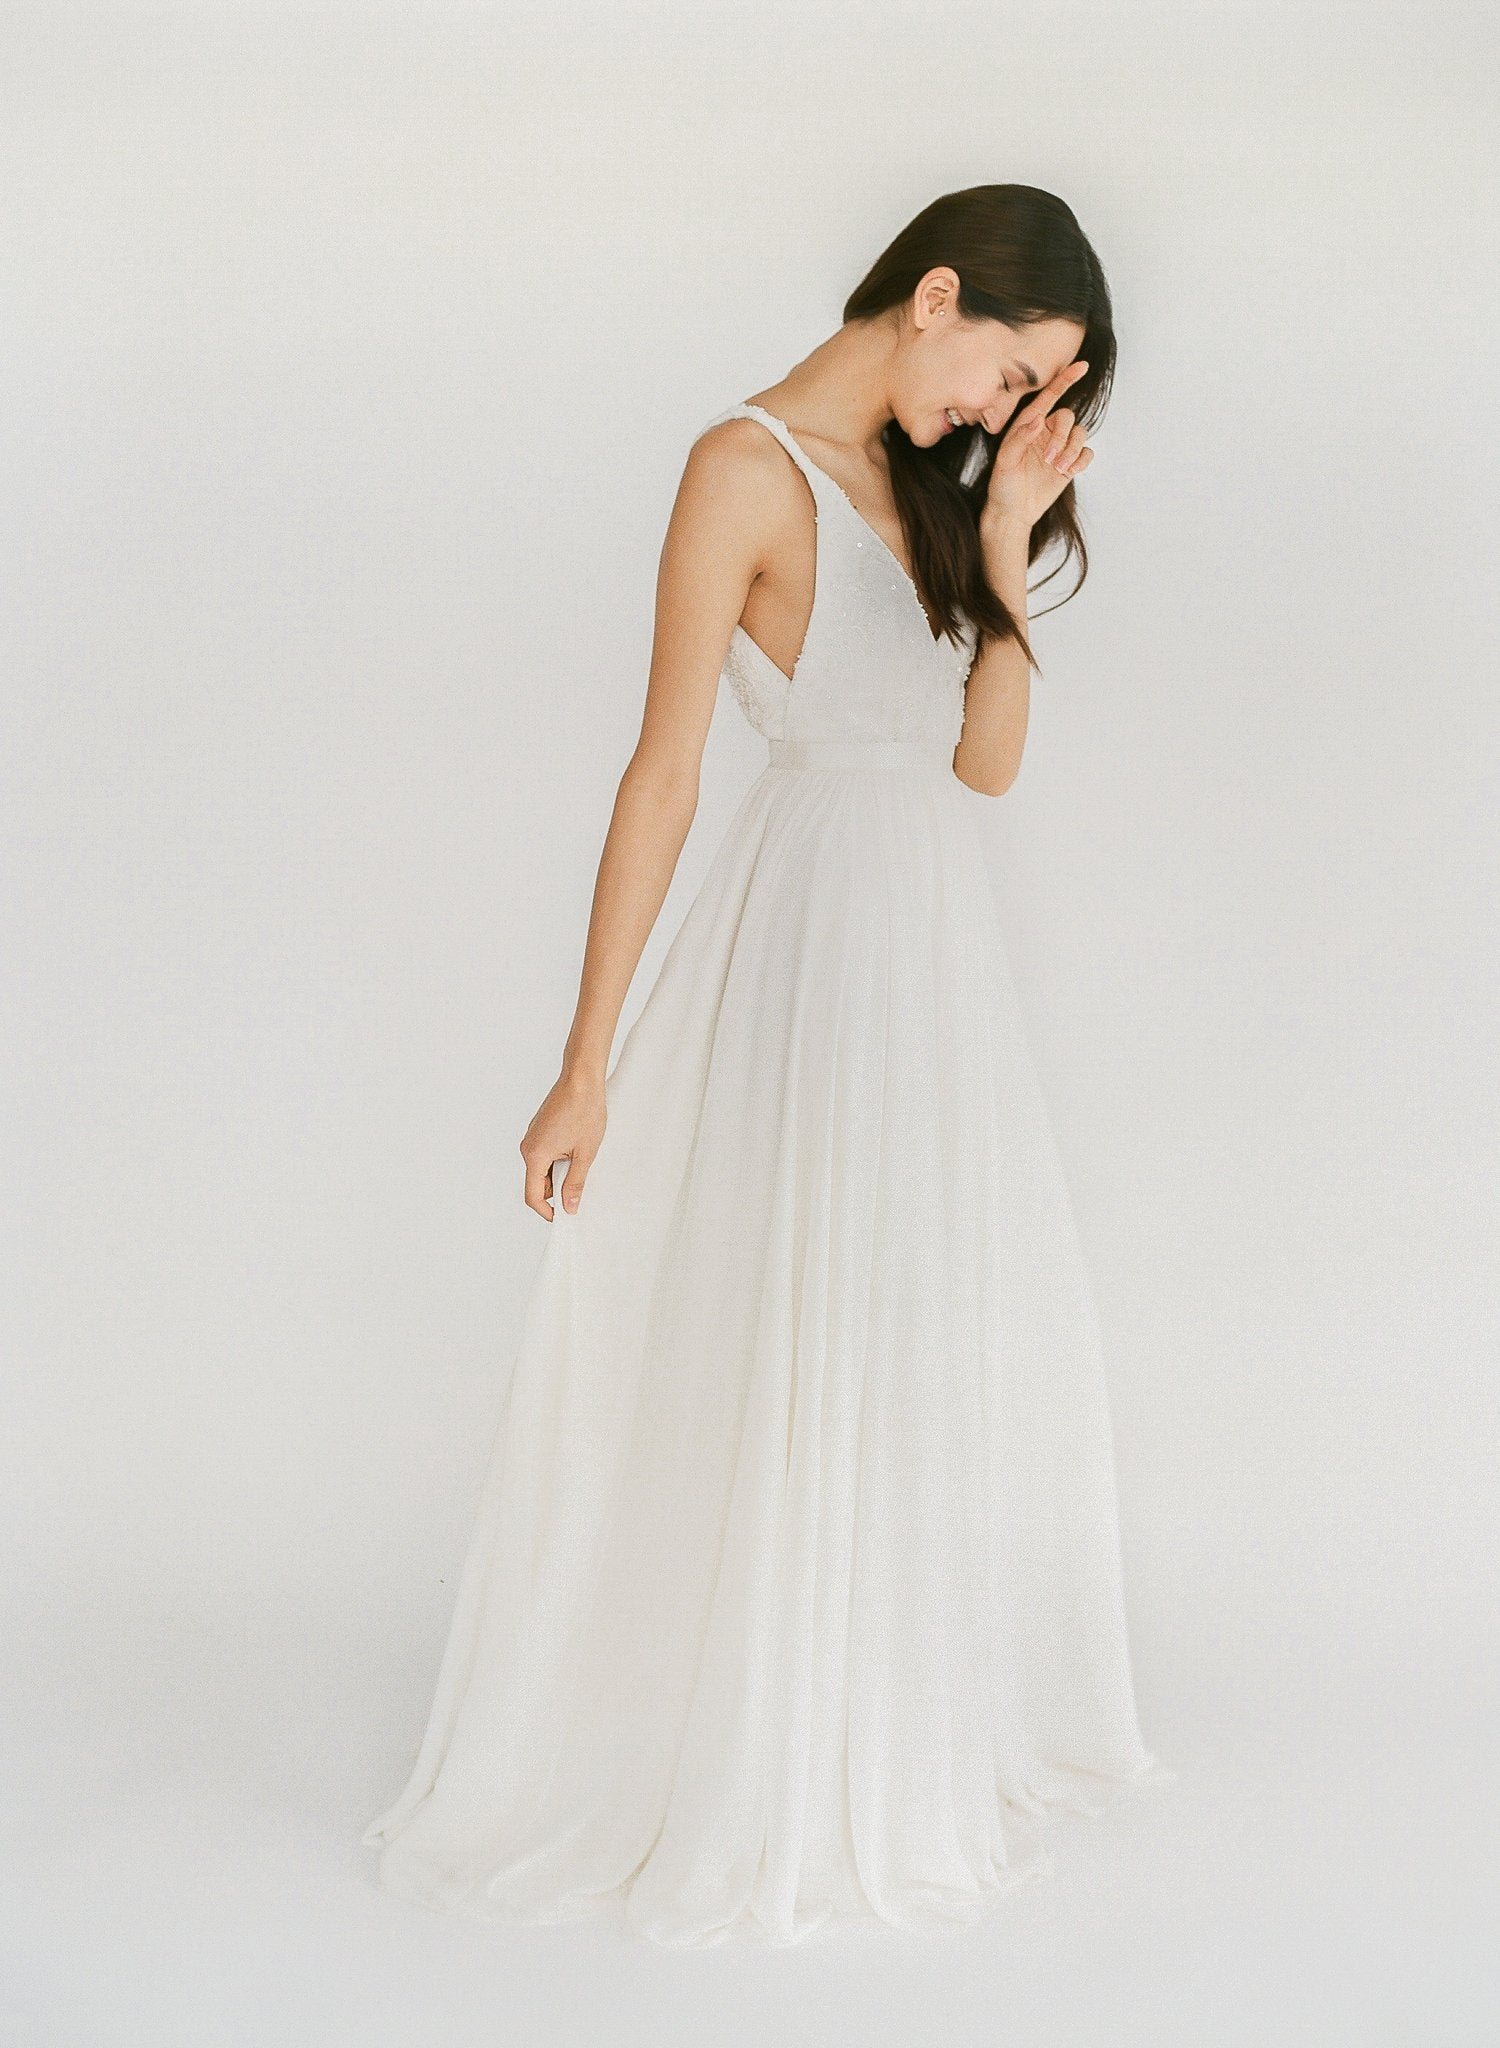 Ethical handmade wedding gown with delicate beaded lace, a flowy chiffon skirt, and an open back